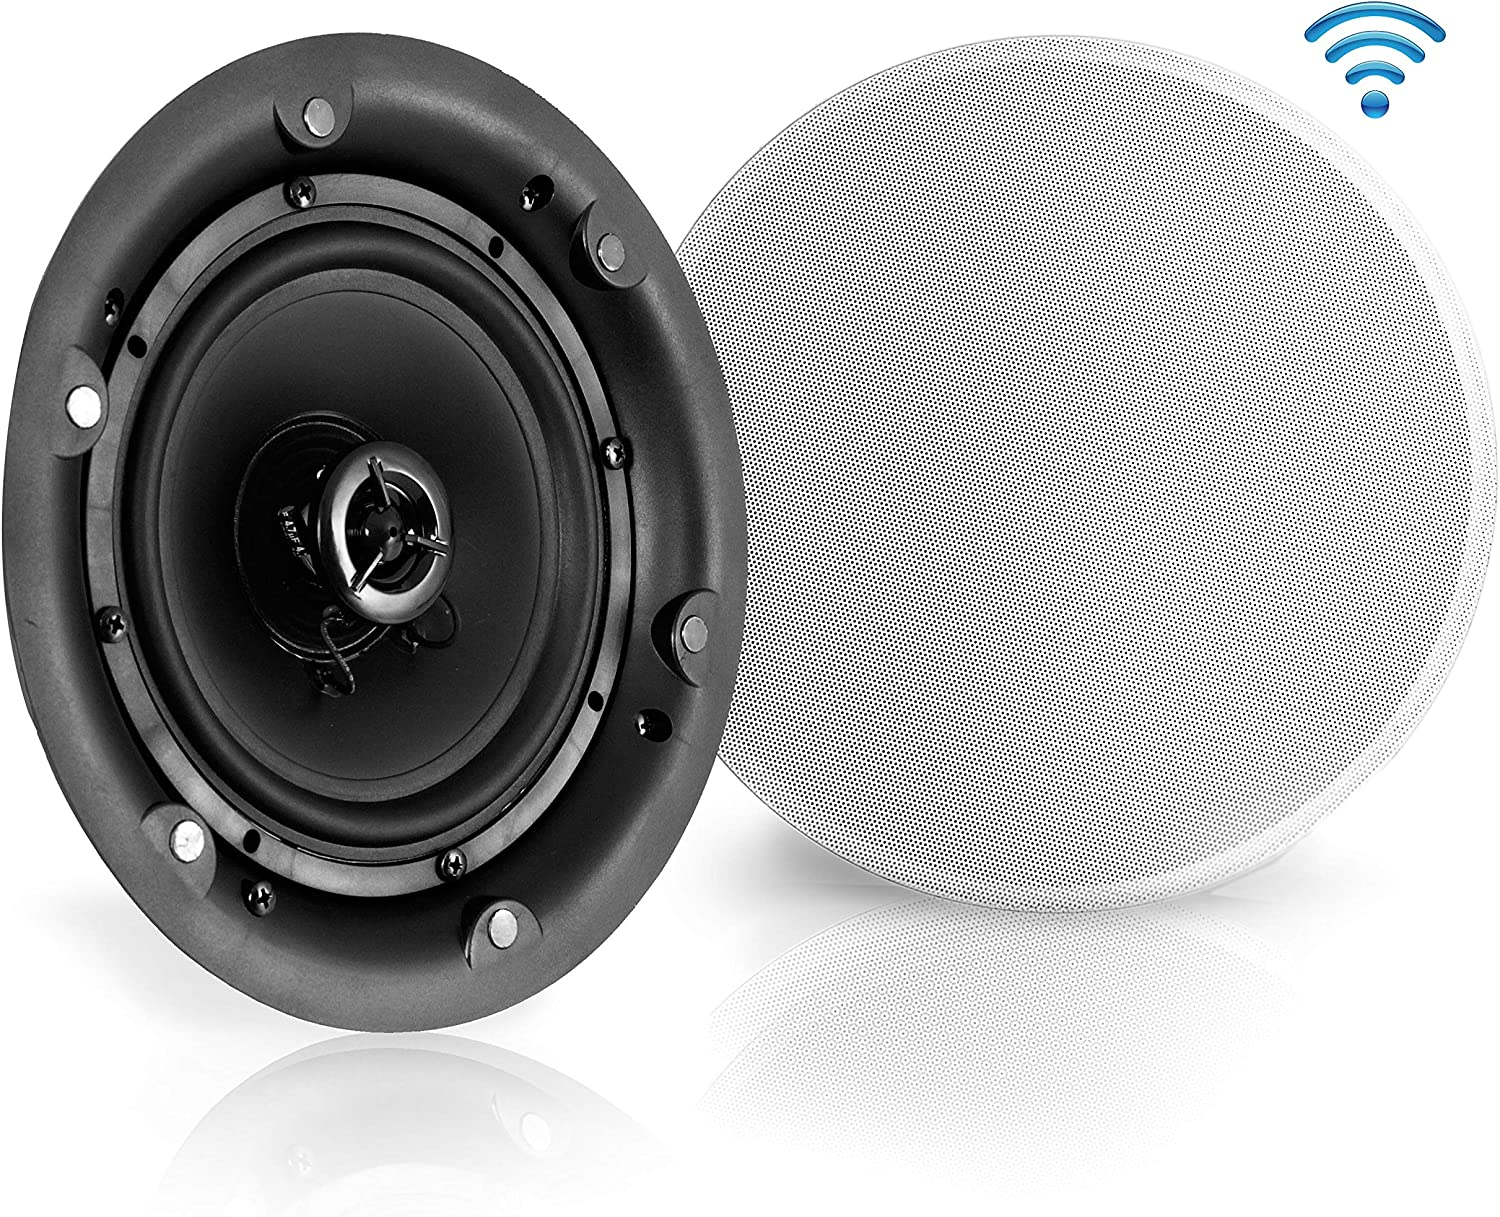 "6.5"" Ceiling Wall Mount Speakers - 2-Way Full Range Active Passive Speaker System Flush Design w/ Bluetooth Wireless Receiver 70Hz-20kHz Frequency Response 300 Watts & Magnetic Grill - Pyle PWRC65BT"